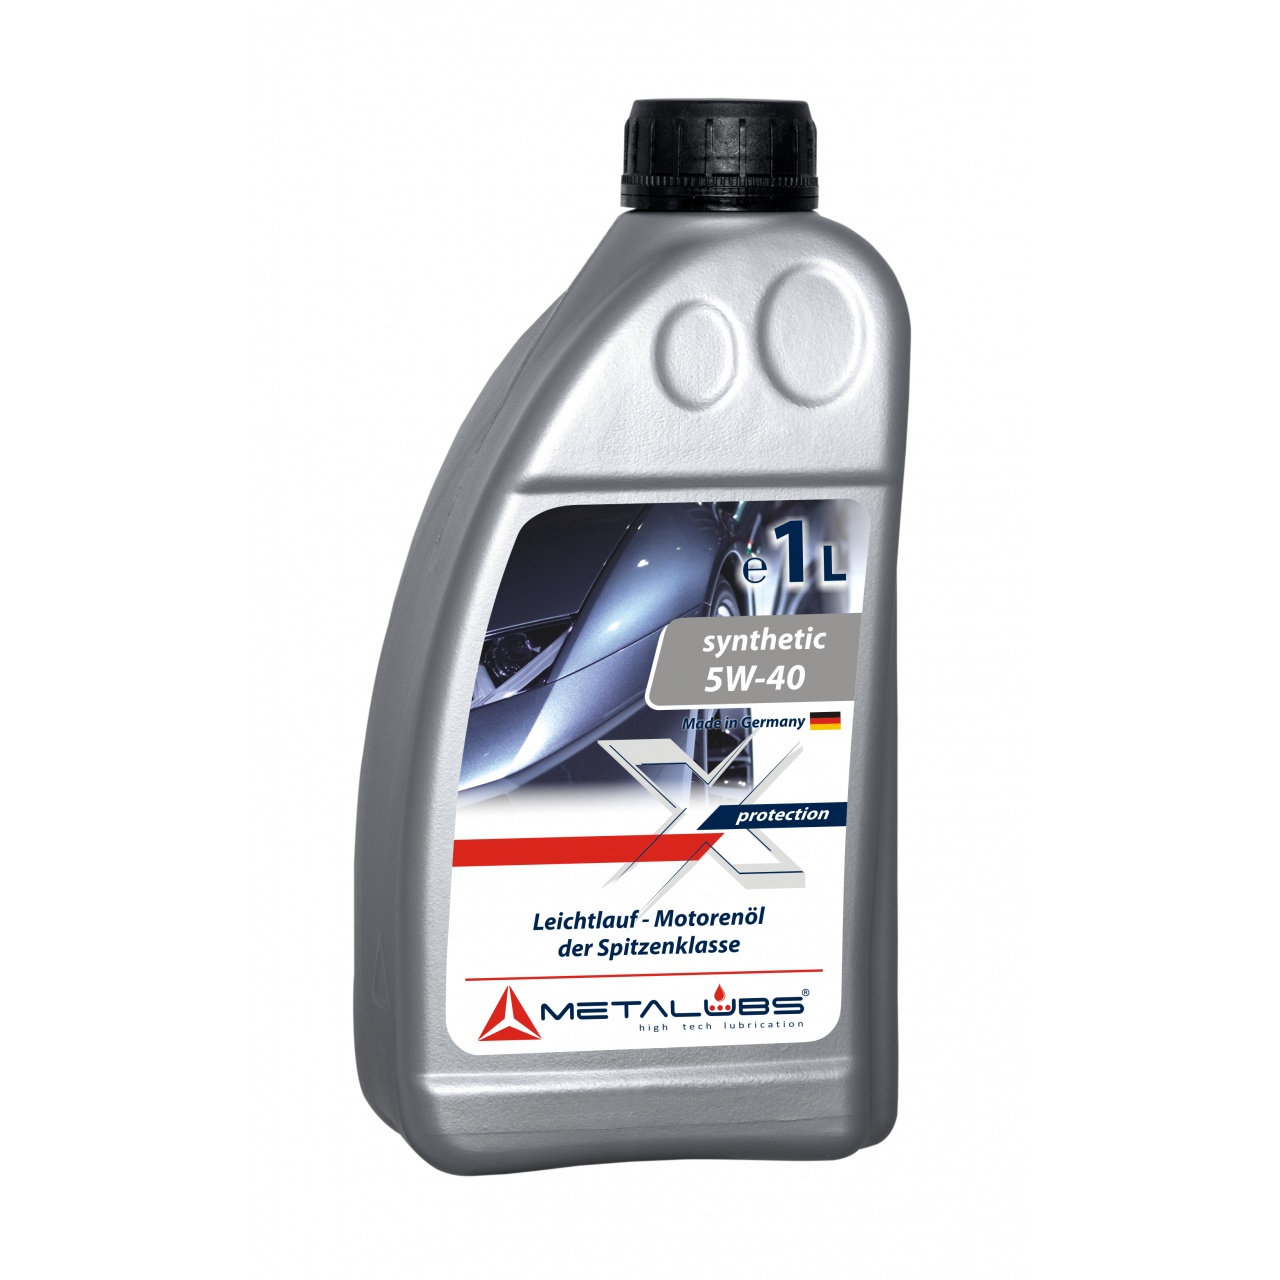 Metalubs Synthetic Oil 5W-40 1l